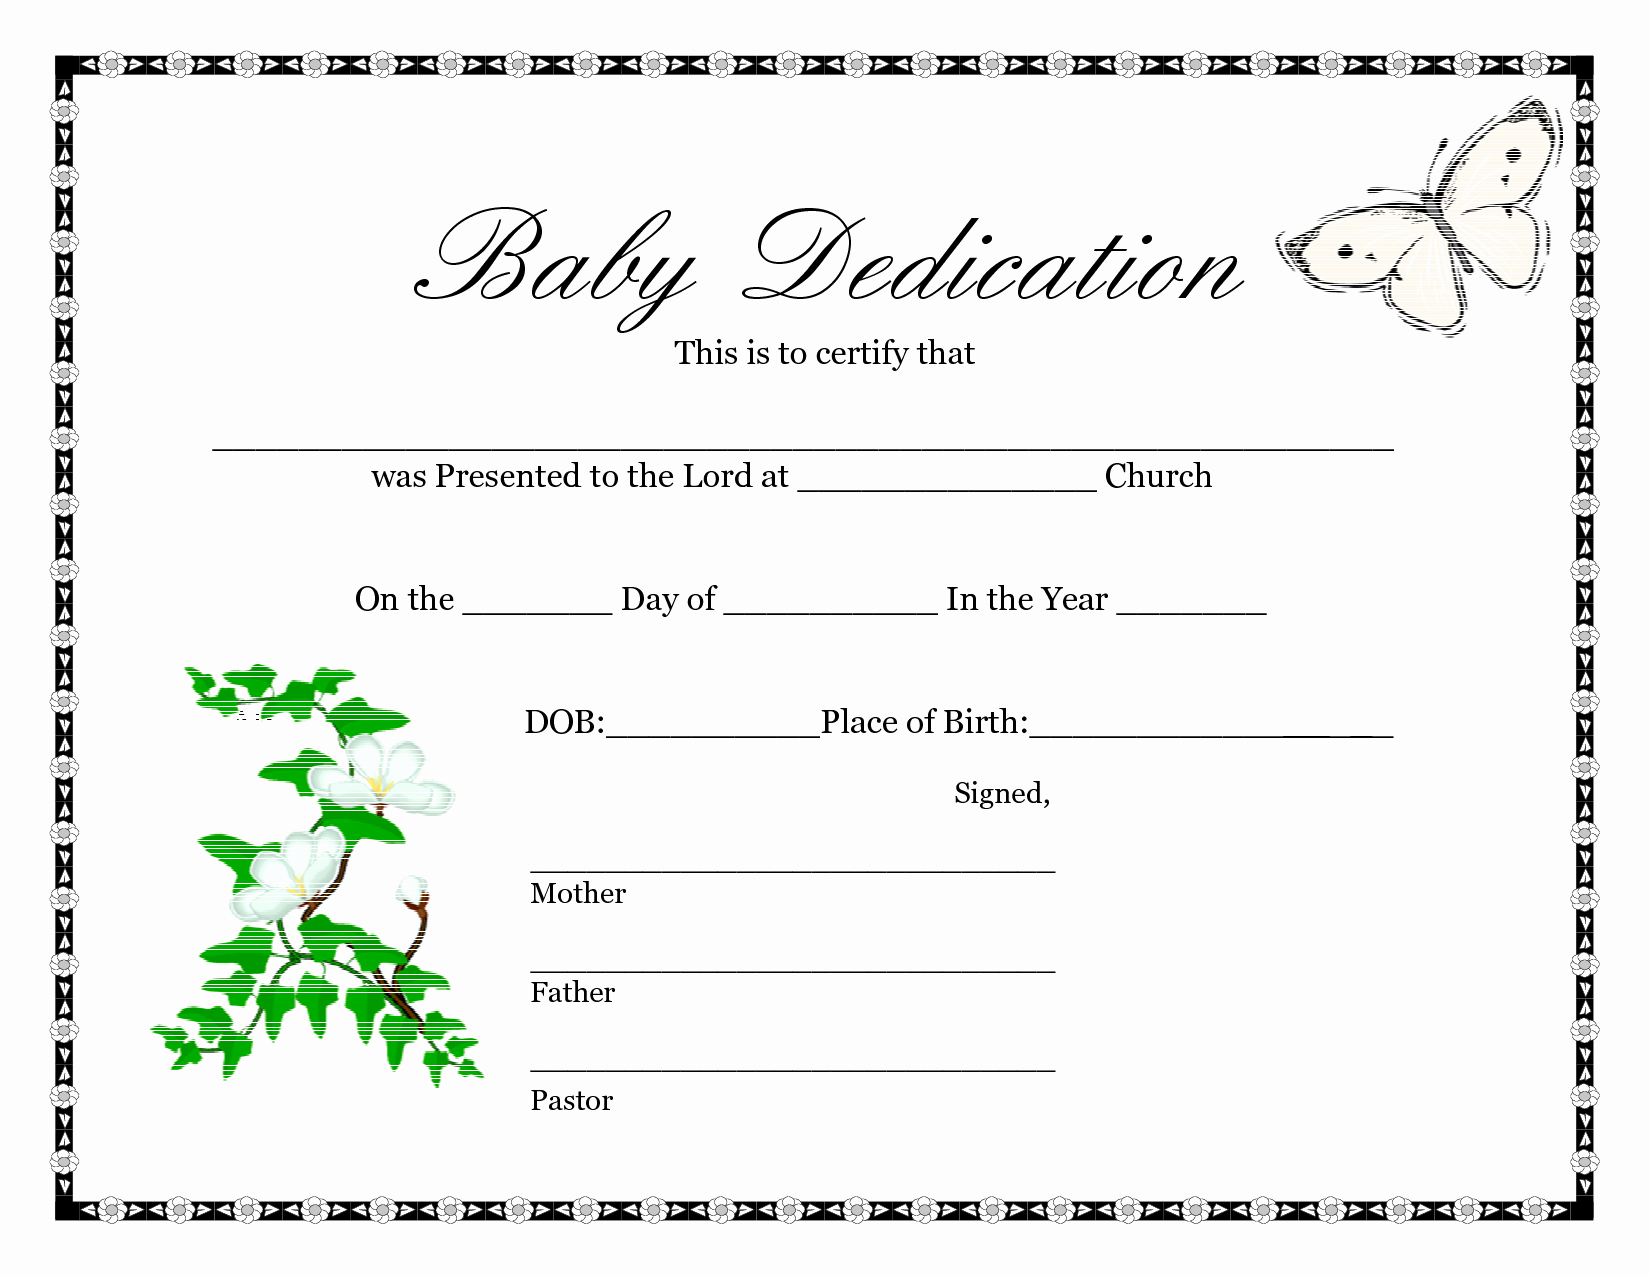 Official Birth Certificate Template New Ficial Certificate Template Portablegasgrillweber